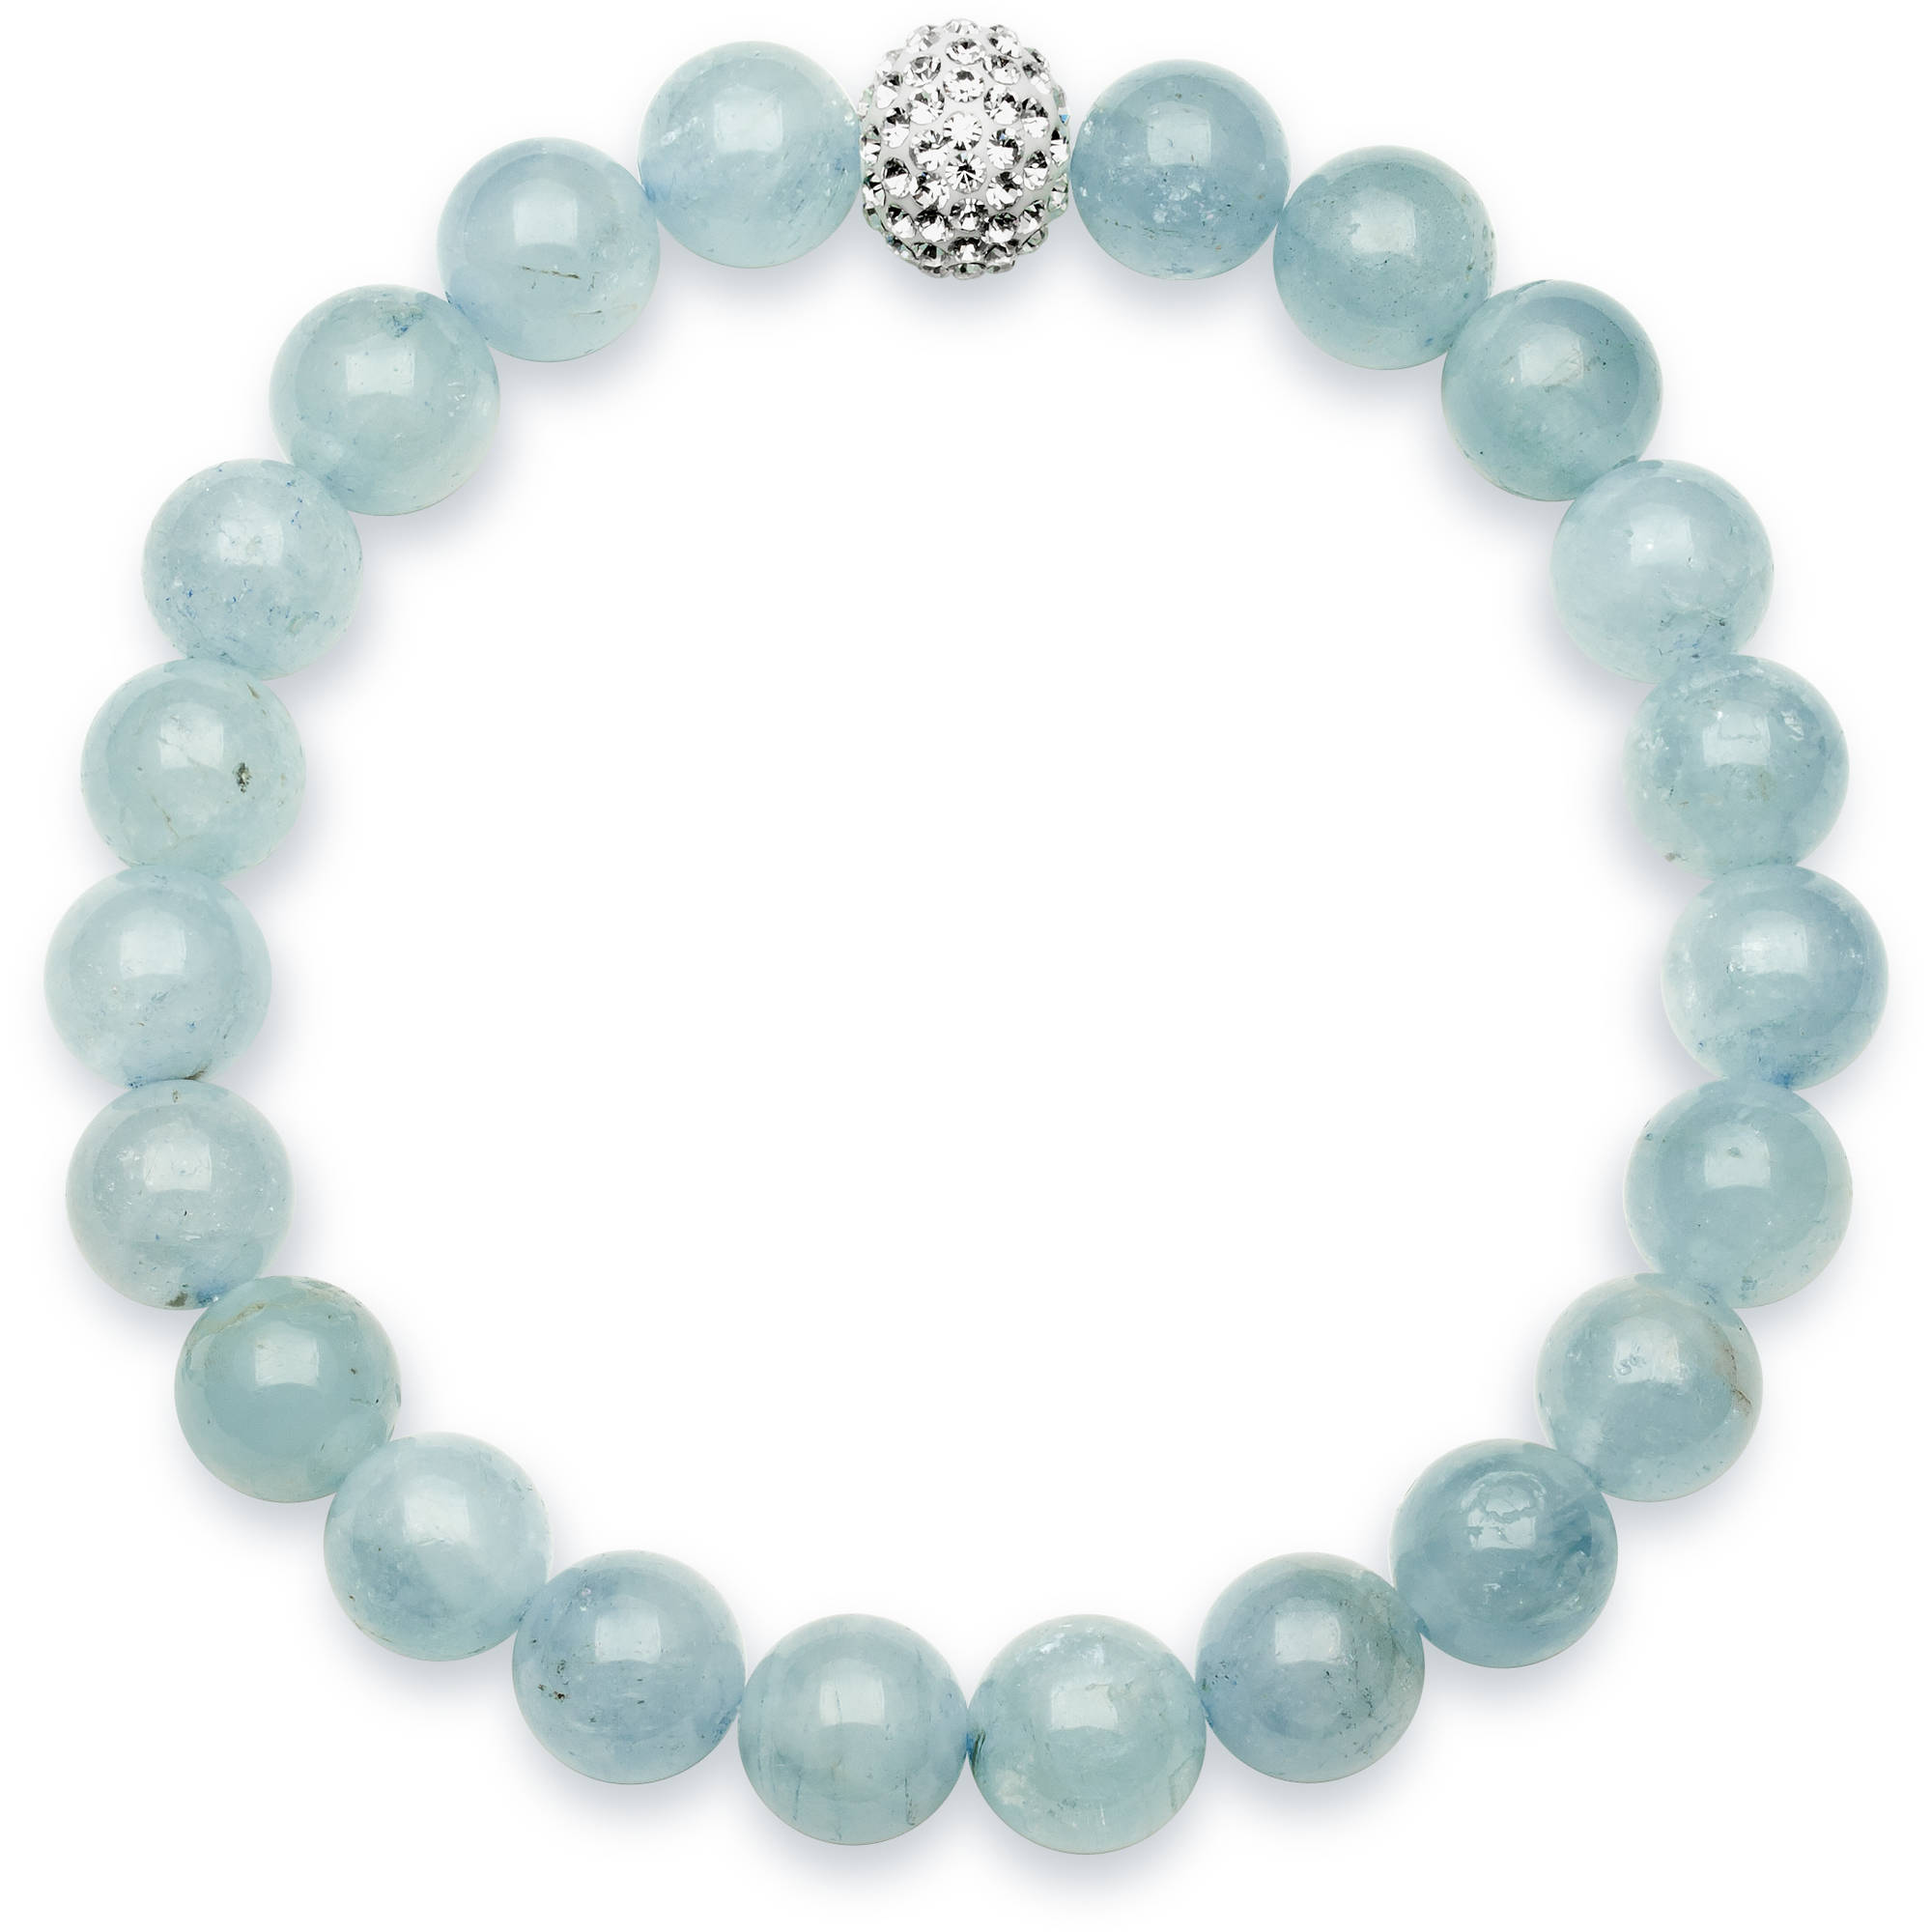 """8mm Milky Aquamarine and Crystal Bead Stretch Bracelet, 7"""" by China Pearl"""